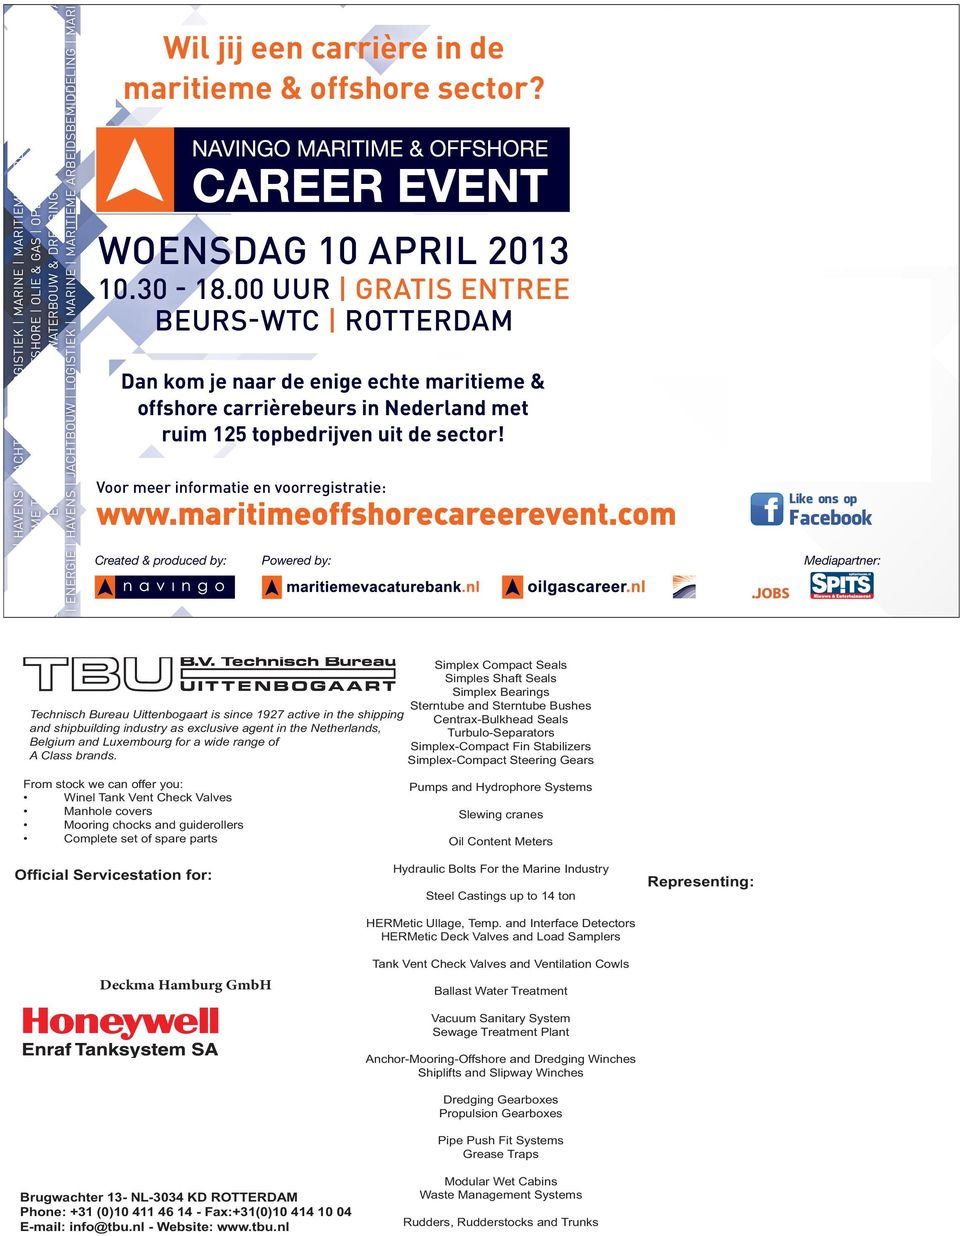 de maritieme & offshore sector? WOENSDAG 10 APRIL 2013 10.30 18.